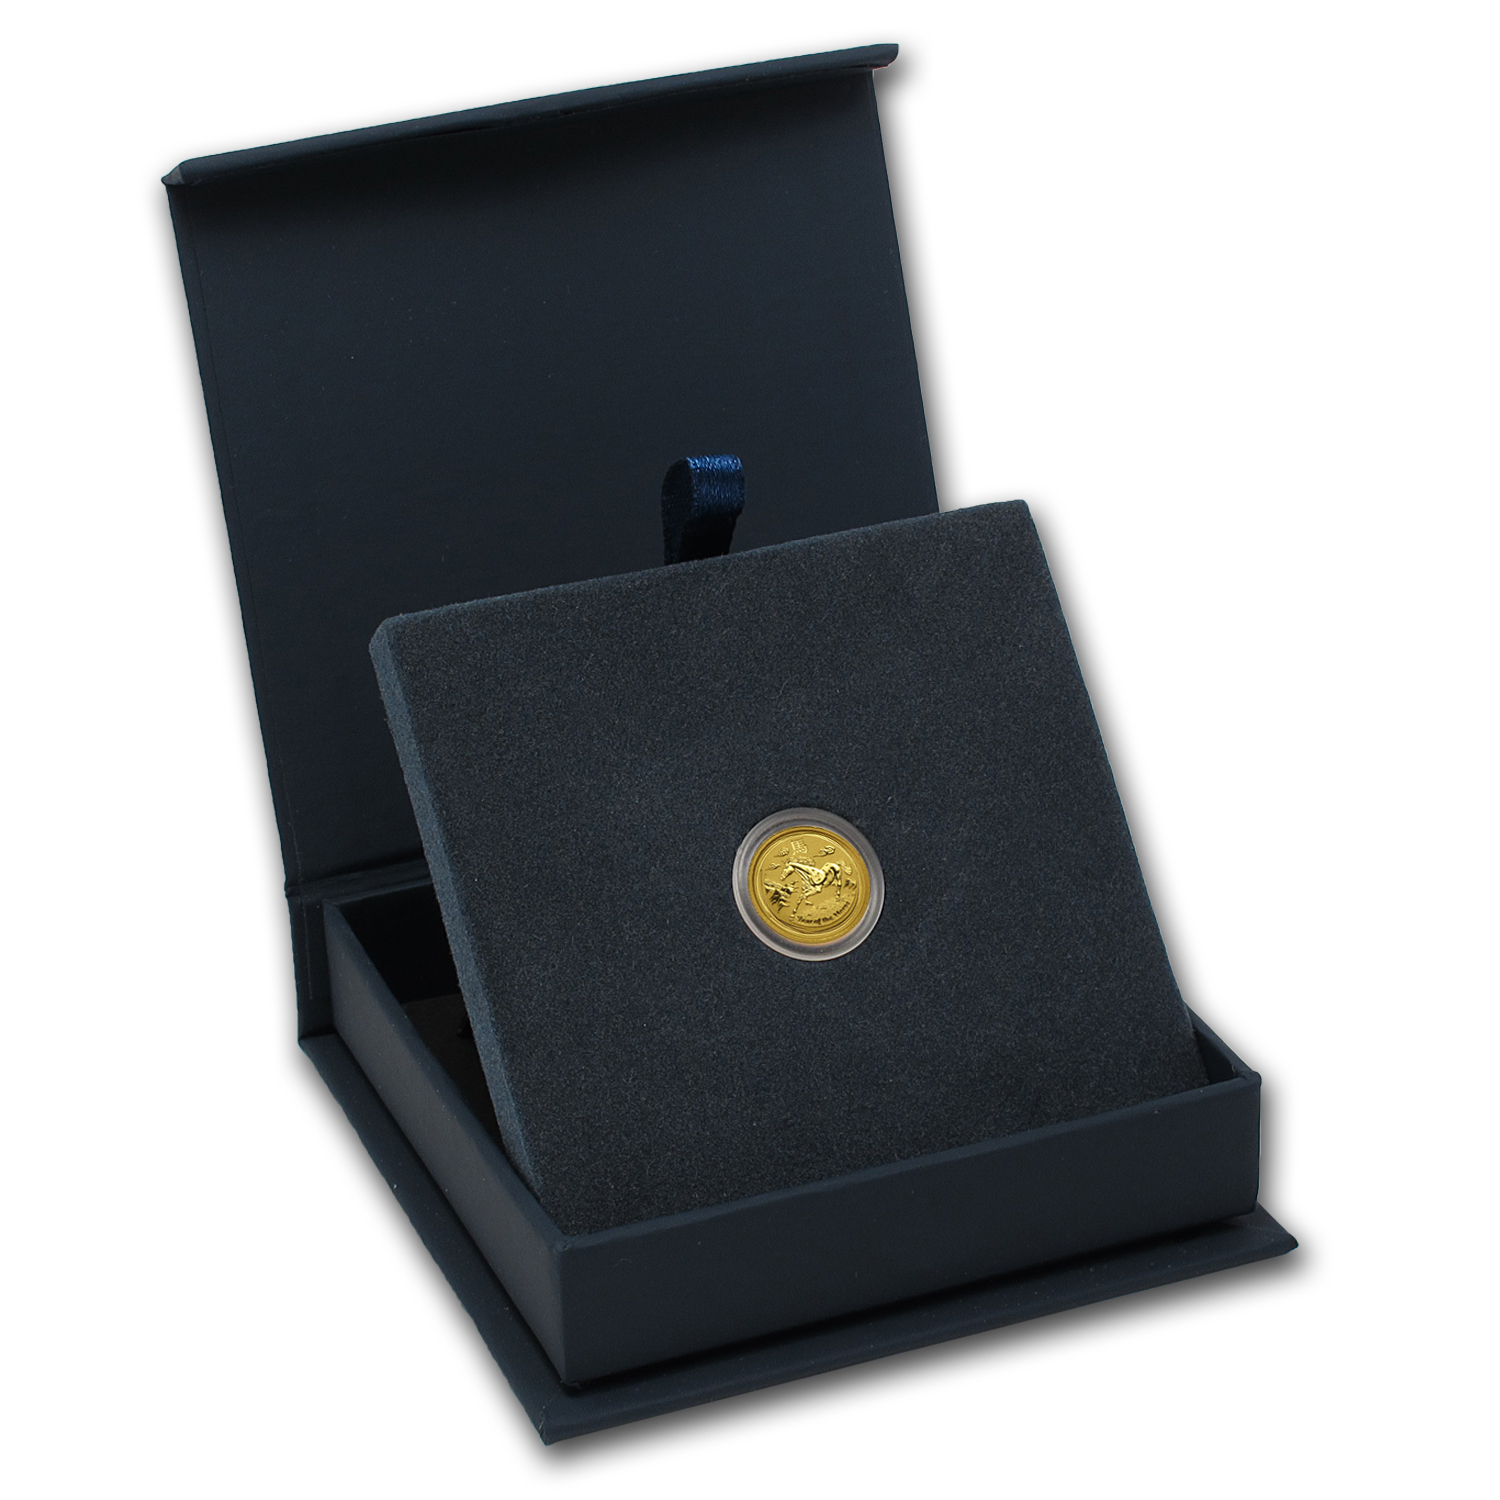 APMEX Gift Box - 1/20 oz Perth Mint Gold Coin